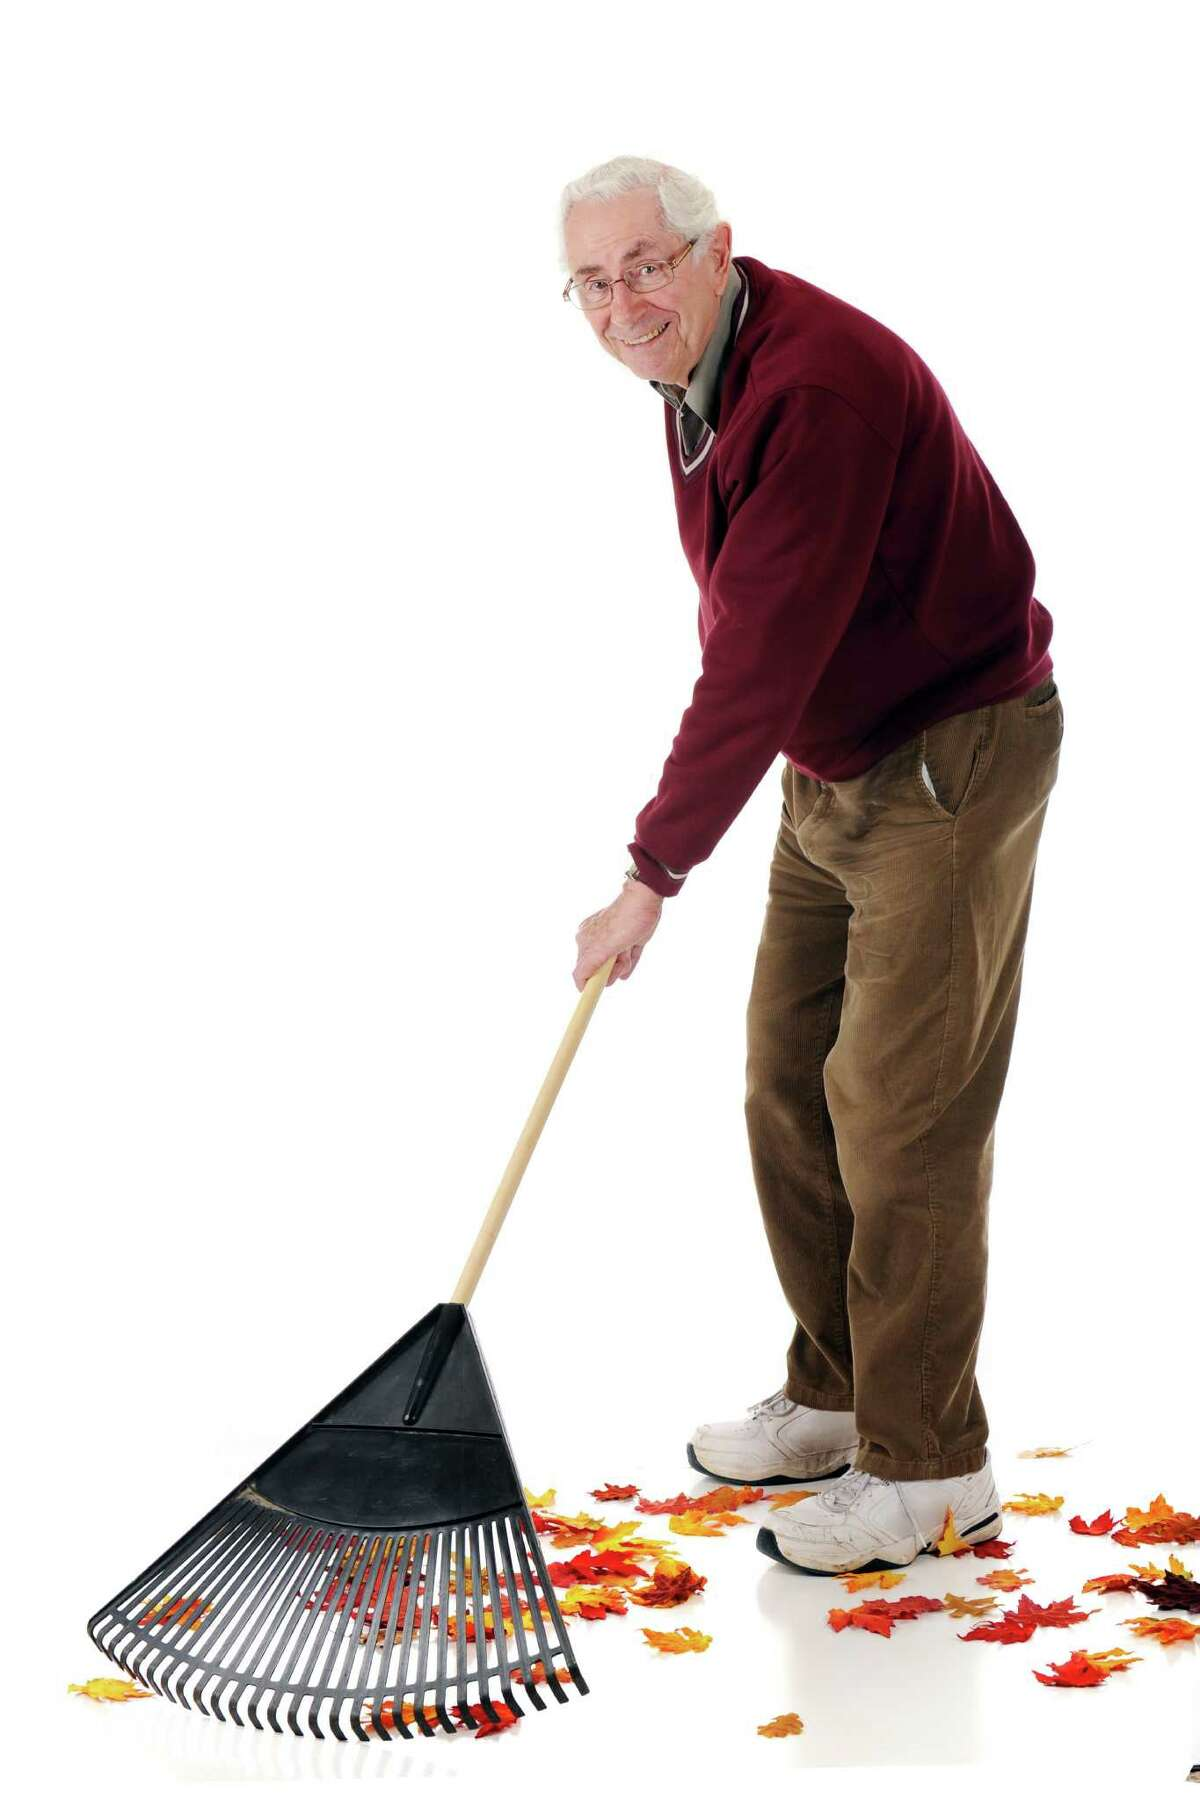 Make sure you use good form to avoid hurting yourself raking leaves. (Fotolia.com)